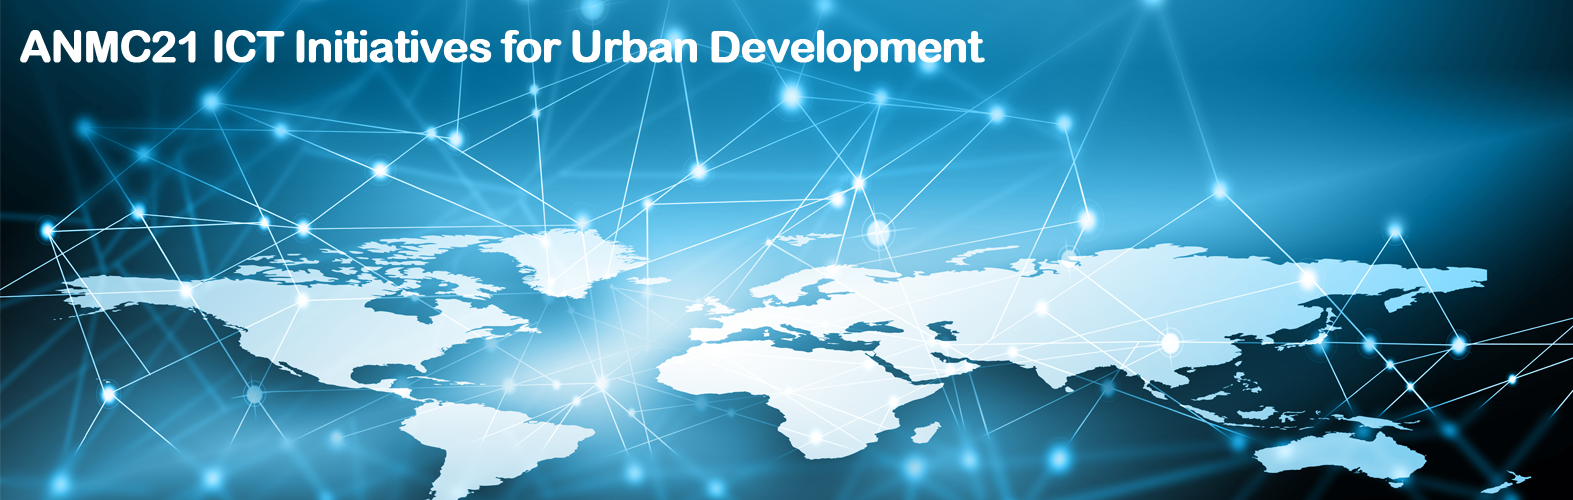 ANMC21 ICT Initiatives for Urban Development